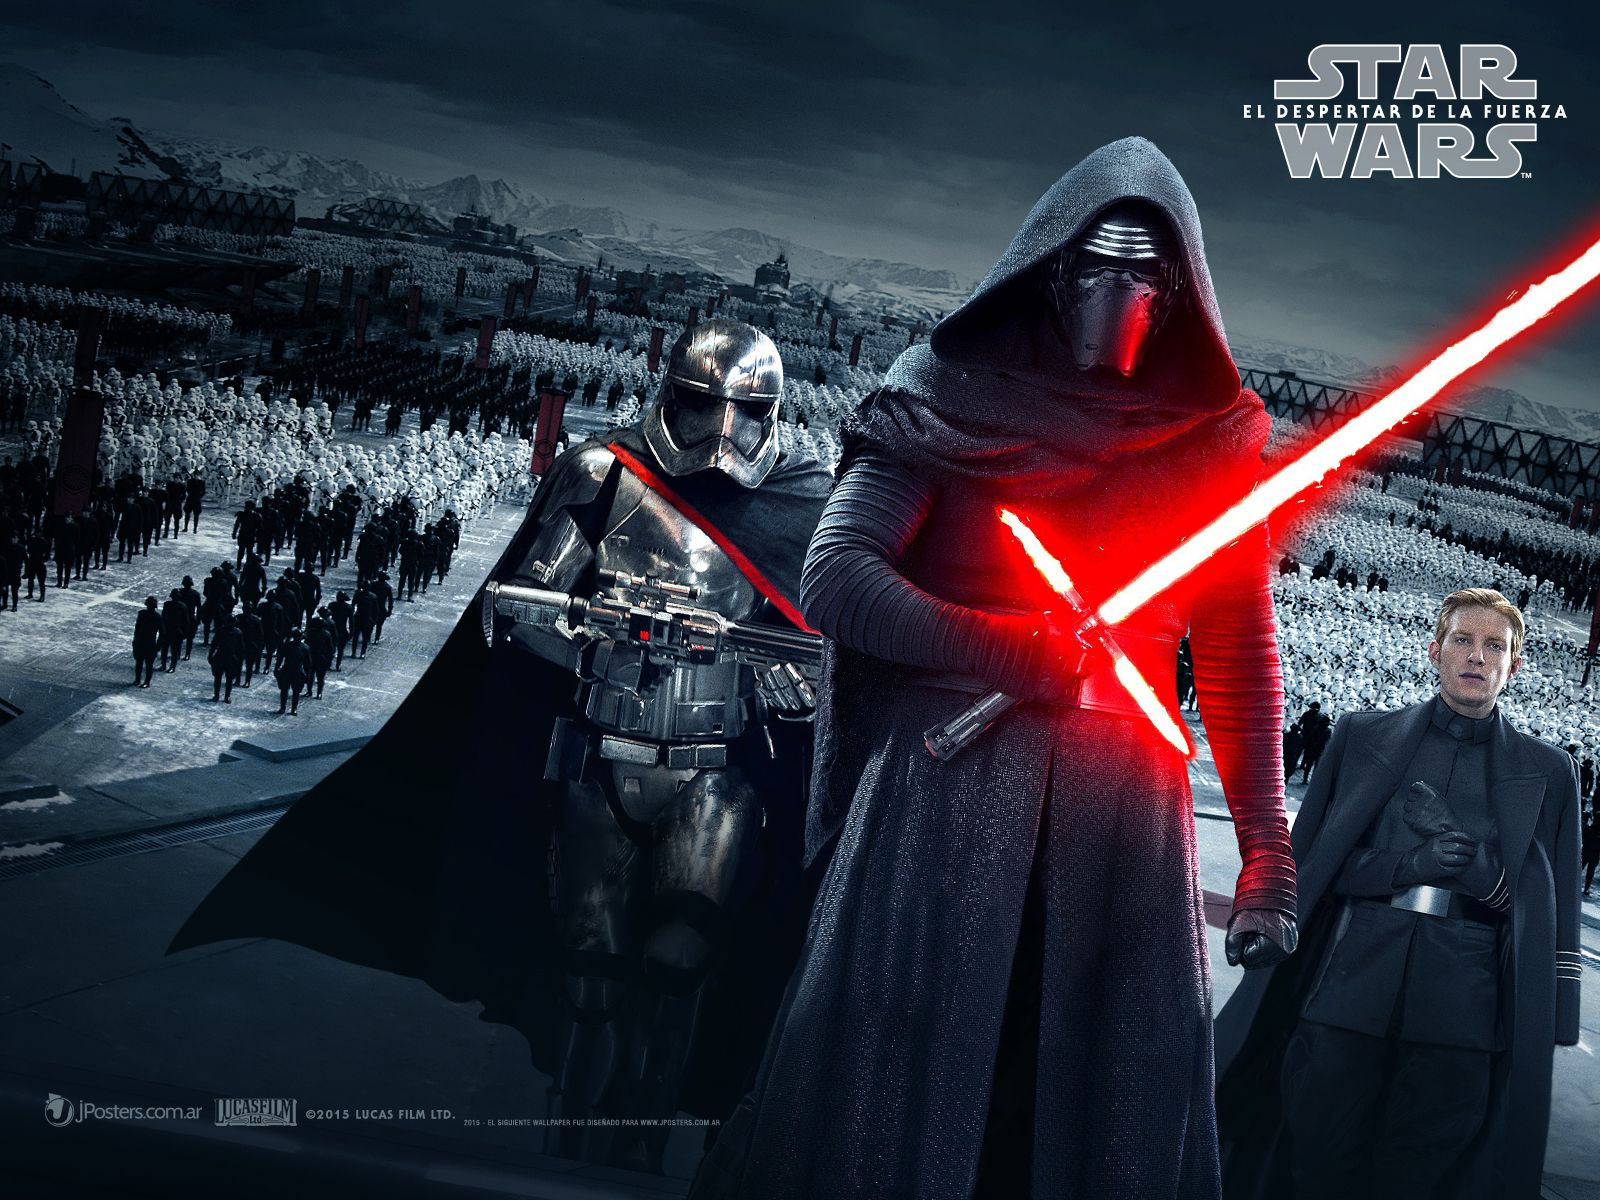 Star Wars 8 Wallpapers Top Free Star Wars 8 Backgrounds Wallpaperaccess